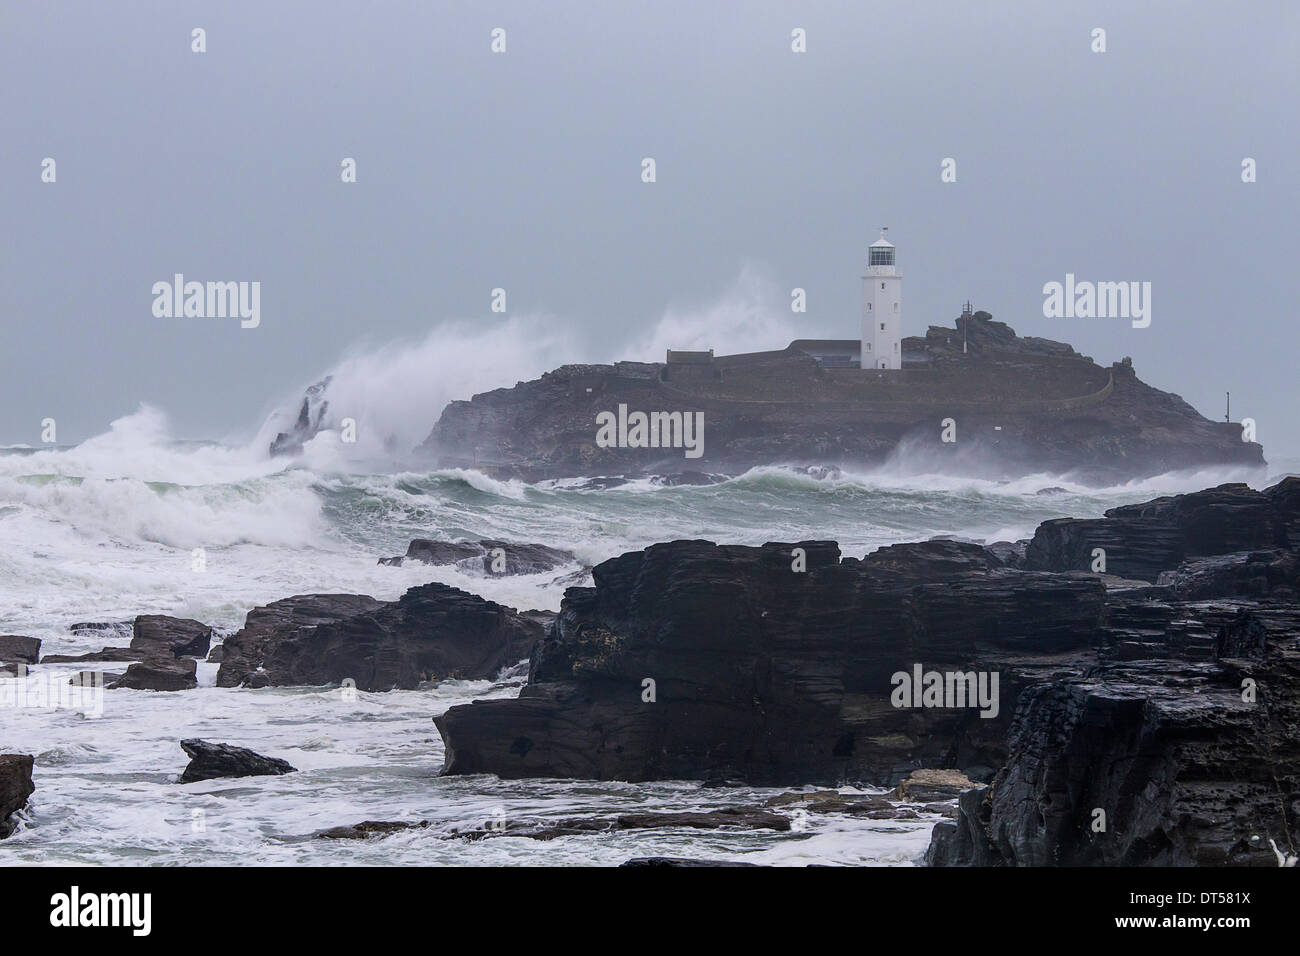 Sennen, UK. 8th Feb, 2014. Godrevy in Cornwall gets battered by huge waves, high winds and storms on saturday 8th febuary Credit:  bowen oakley/Alamy Live News - Stock Image